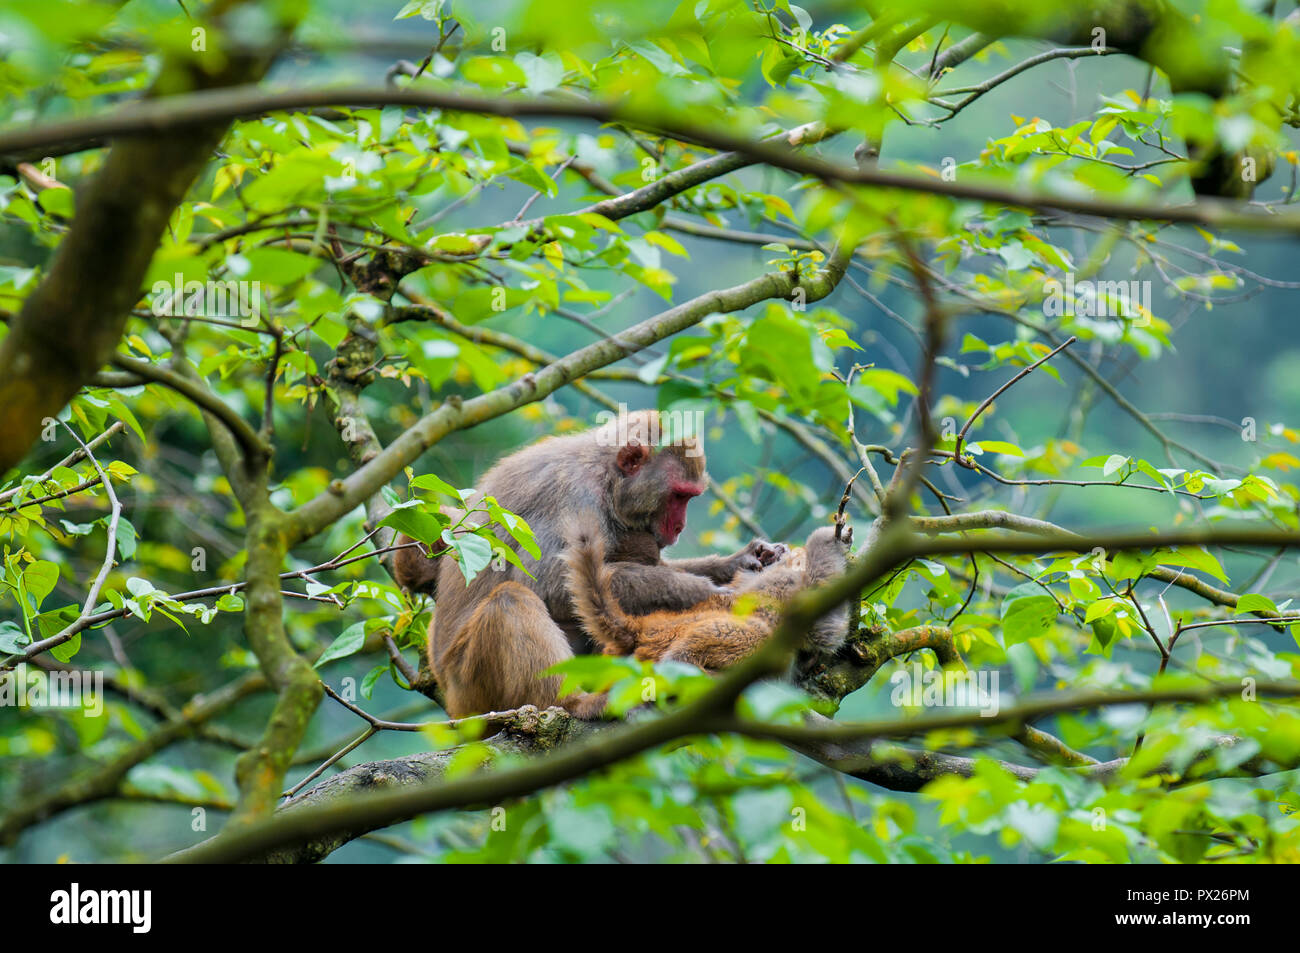 Wild macaque monkeys (Macaca mulatta) near Ten Thousand Buddhas Monastery, Sha Tin, Hong Kong, China. Stock Photo